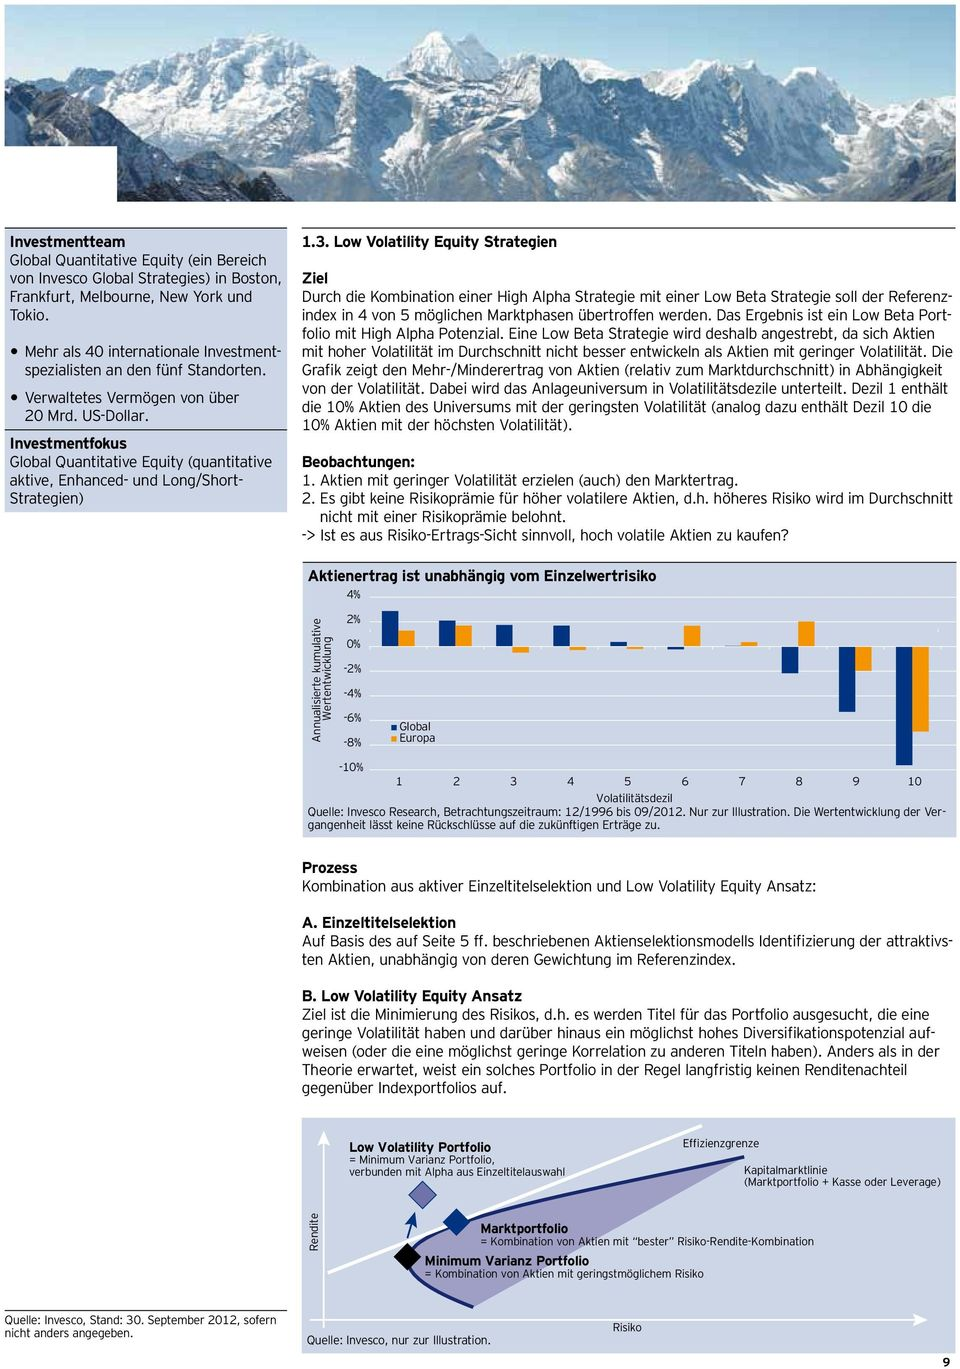 Investmentfokus Global Quantitative Equity (quantitative aktive, Enhanced- und Long/Short- Strategien) 1.3.